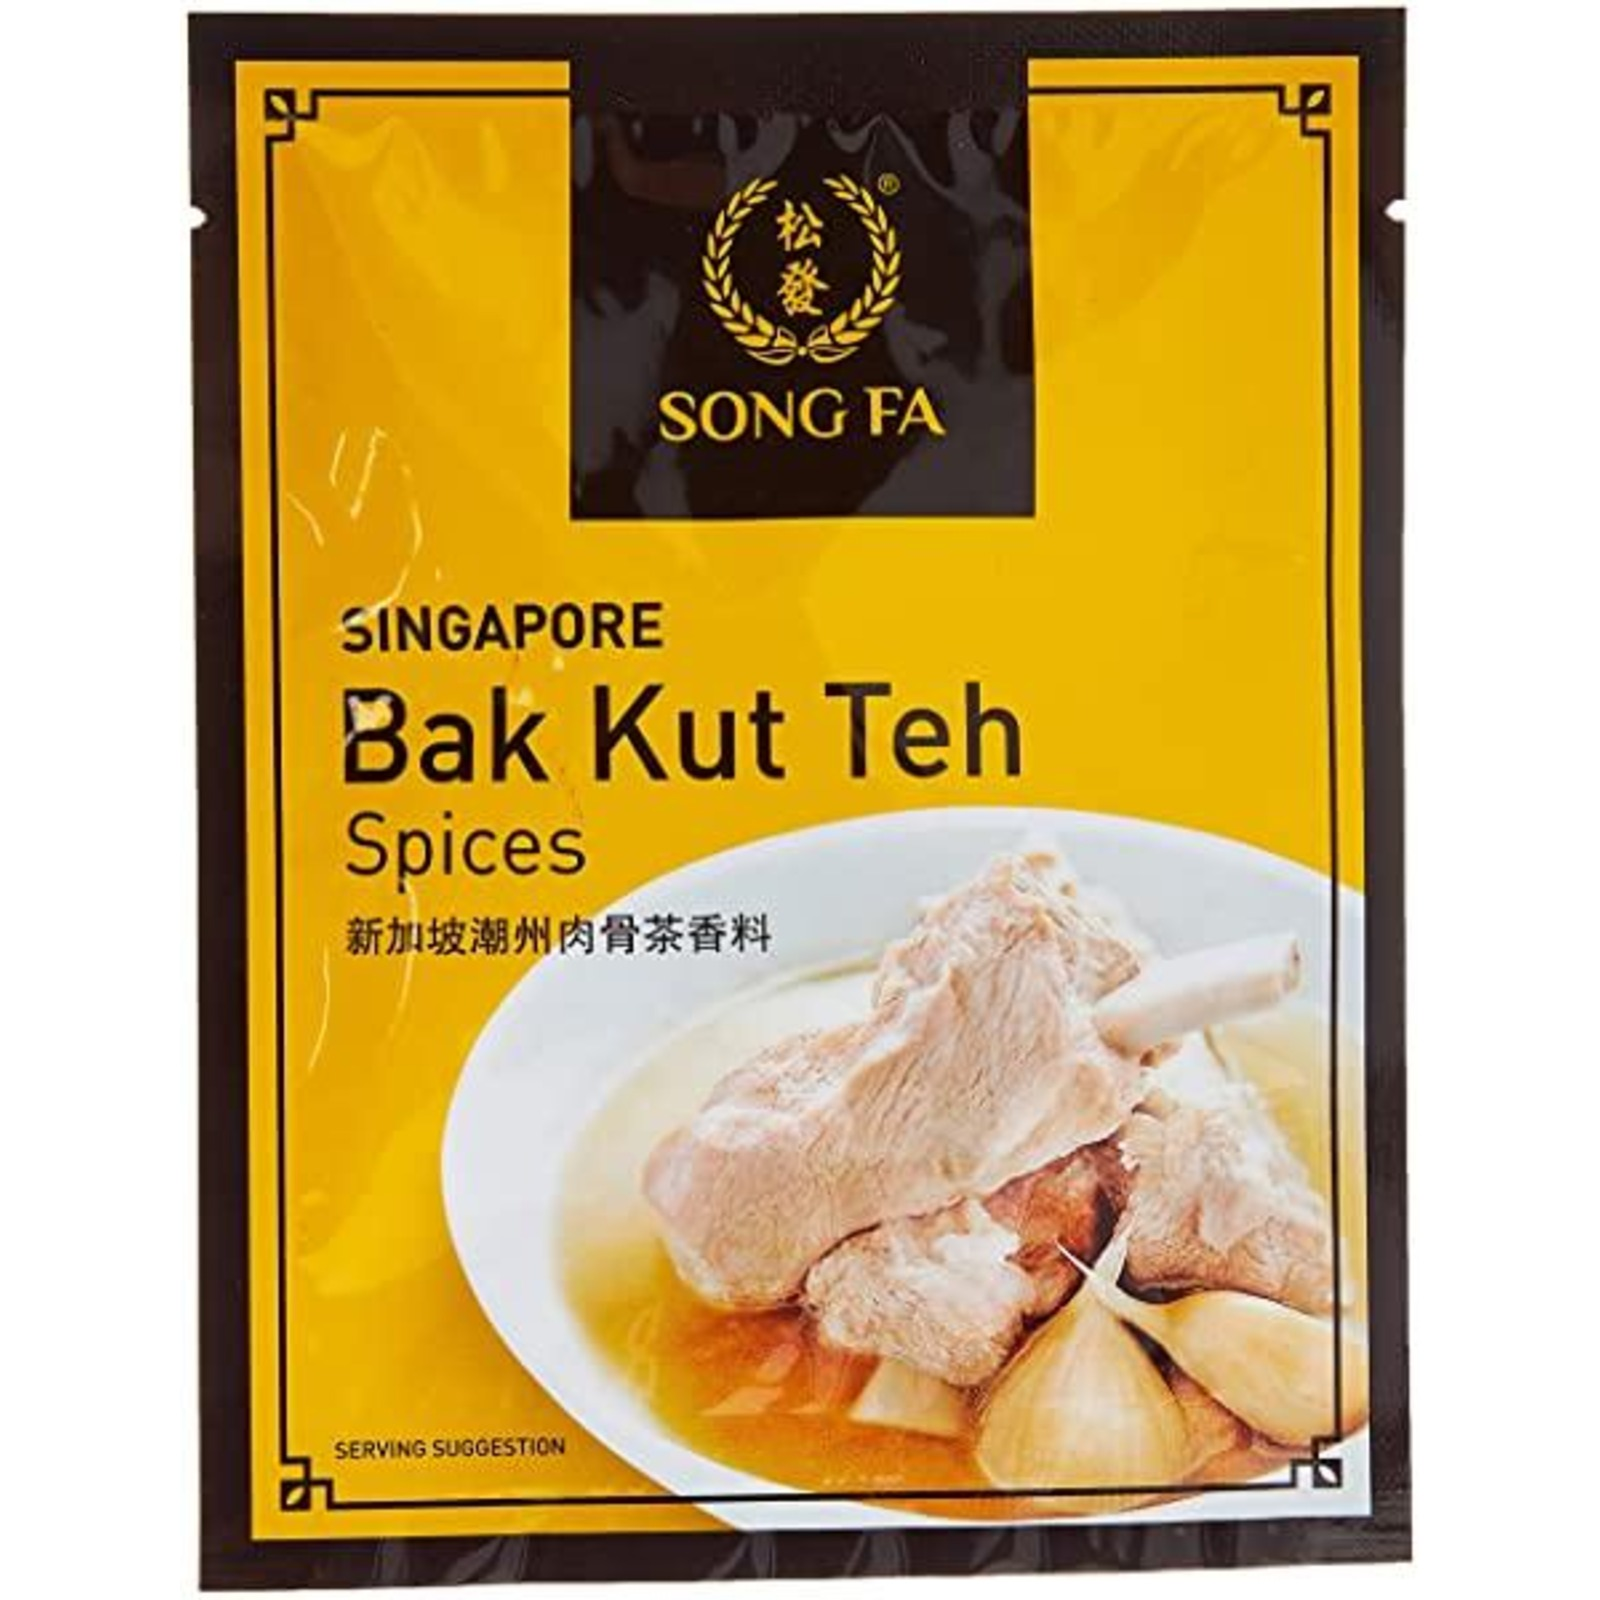 Song Fa Bak Kut Teh Spices